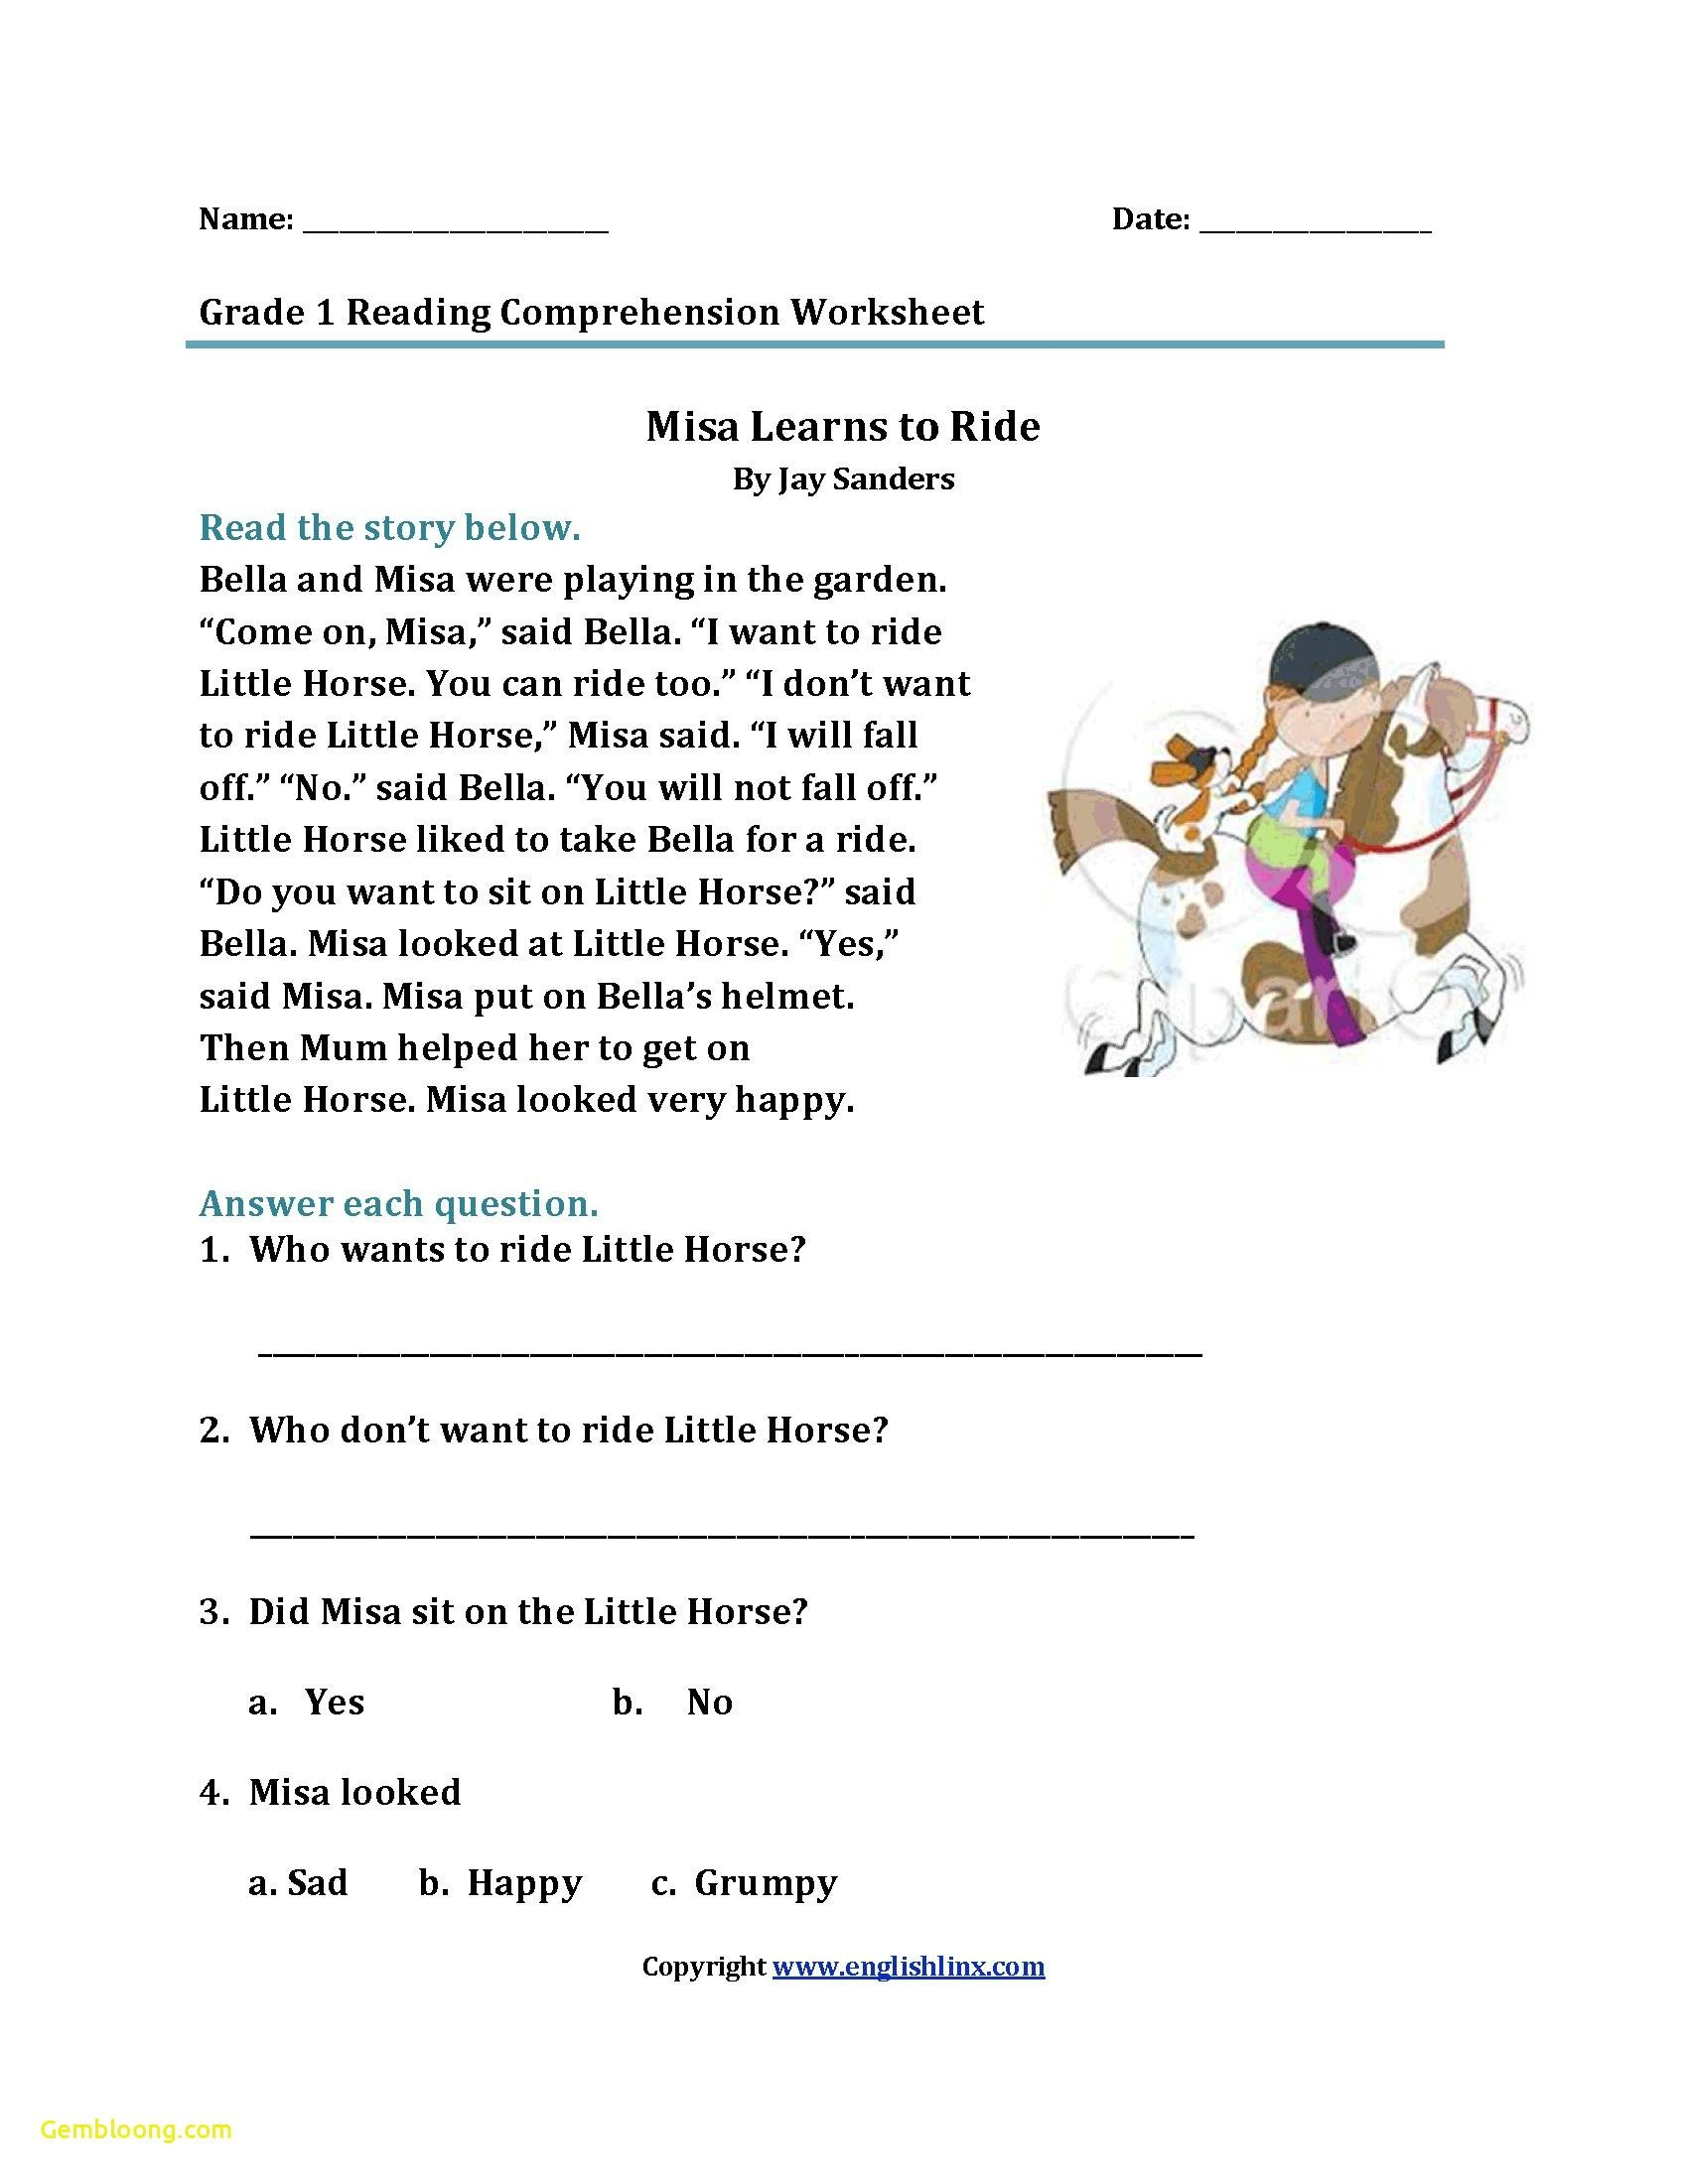 Reading Comprehension Worksheets For 1St Grade - Cramerforcongress - Free Printable Grade 1 Reading Comprehension Worksheets